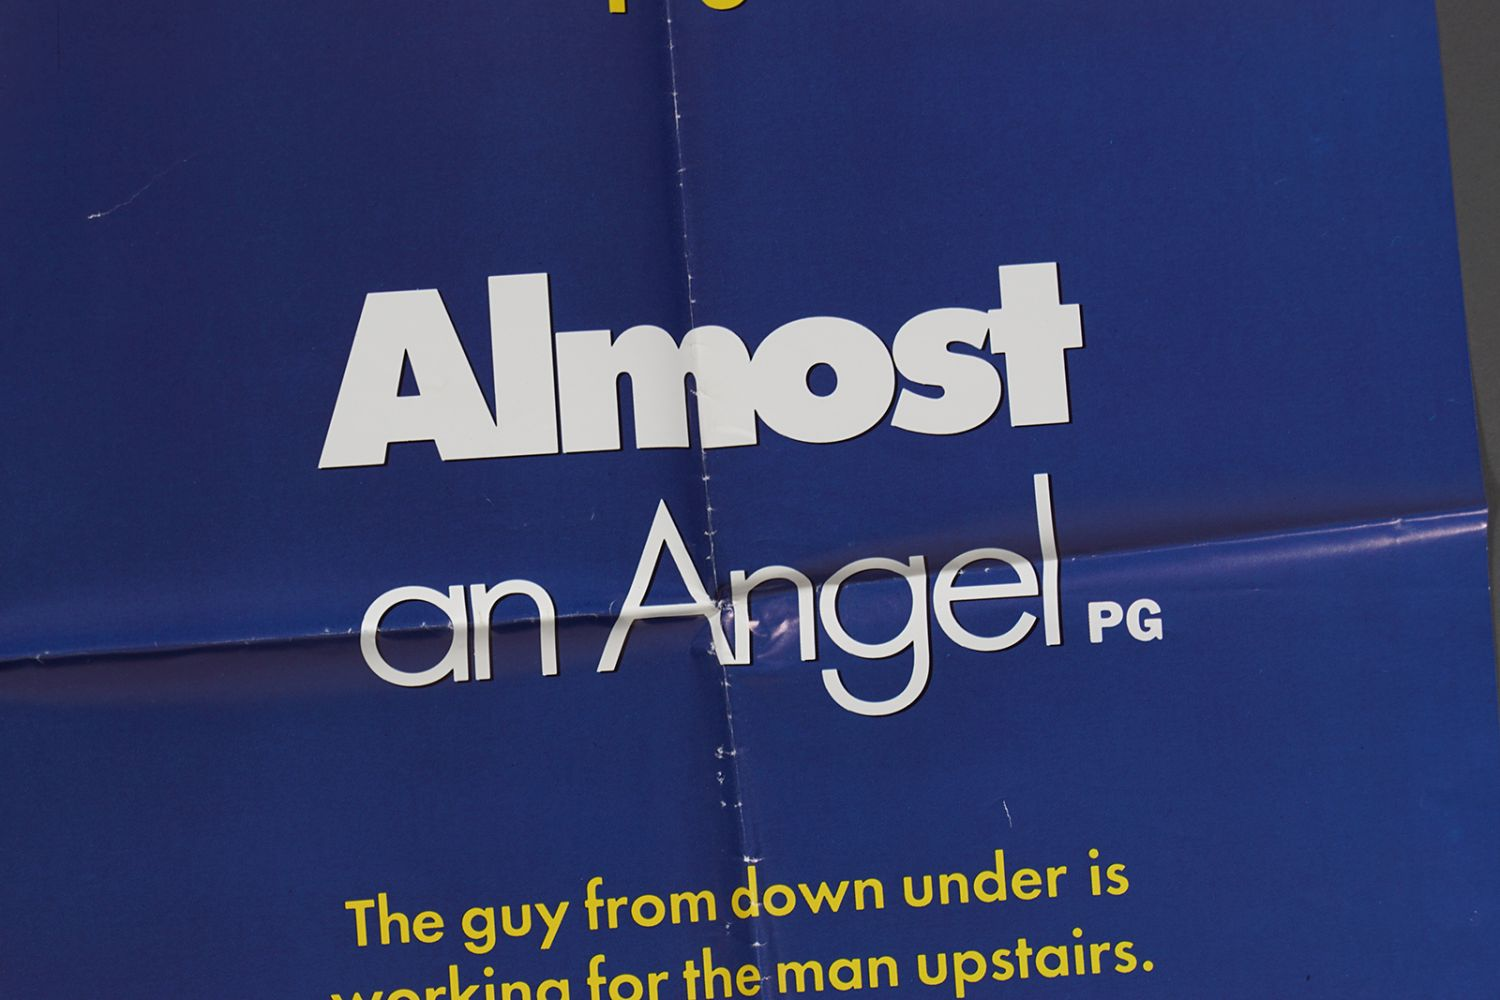 ALMOST AN ANGEL - Image 3 of 3